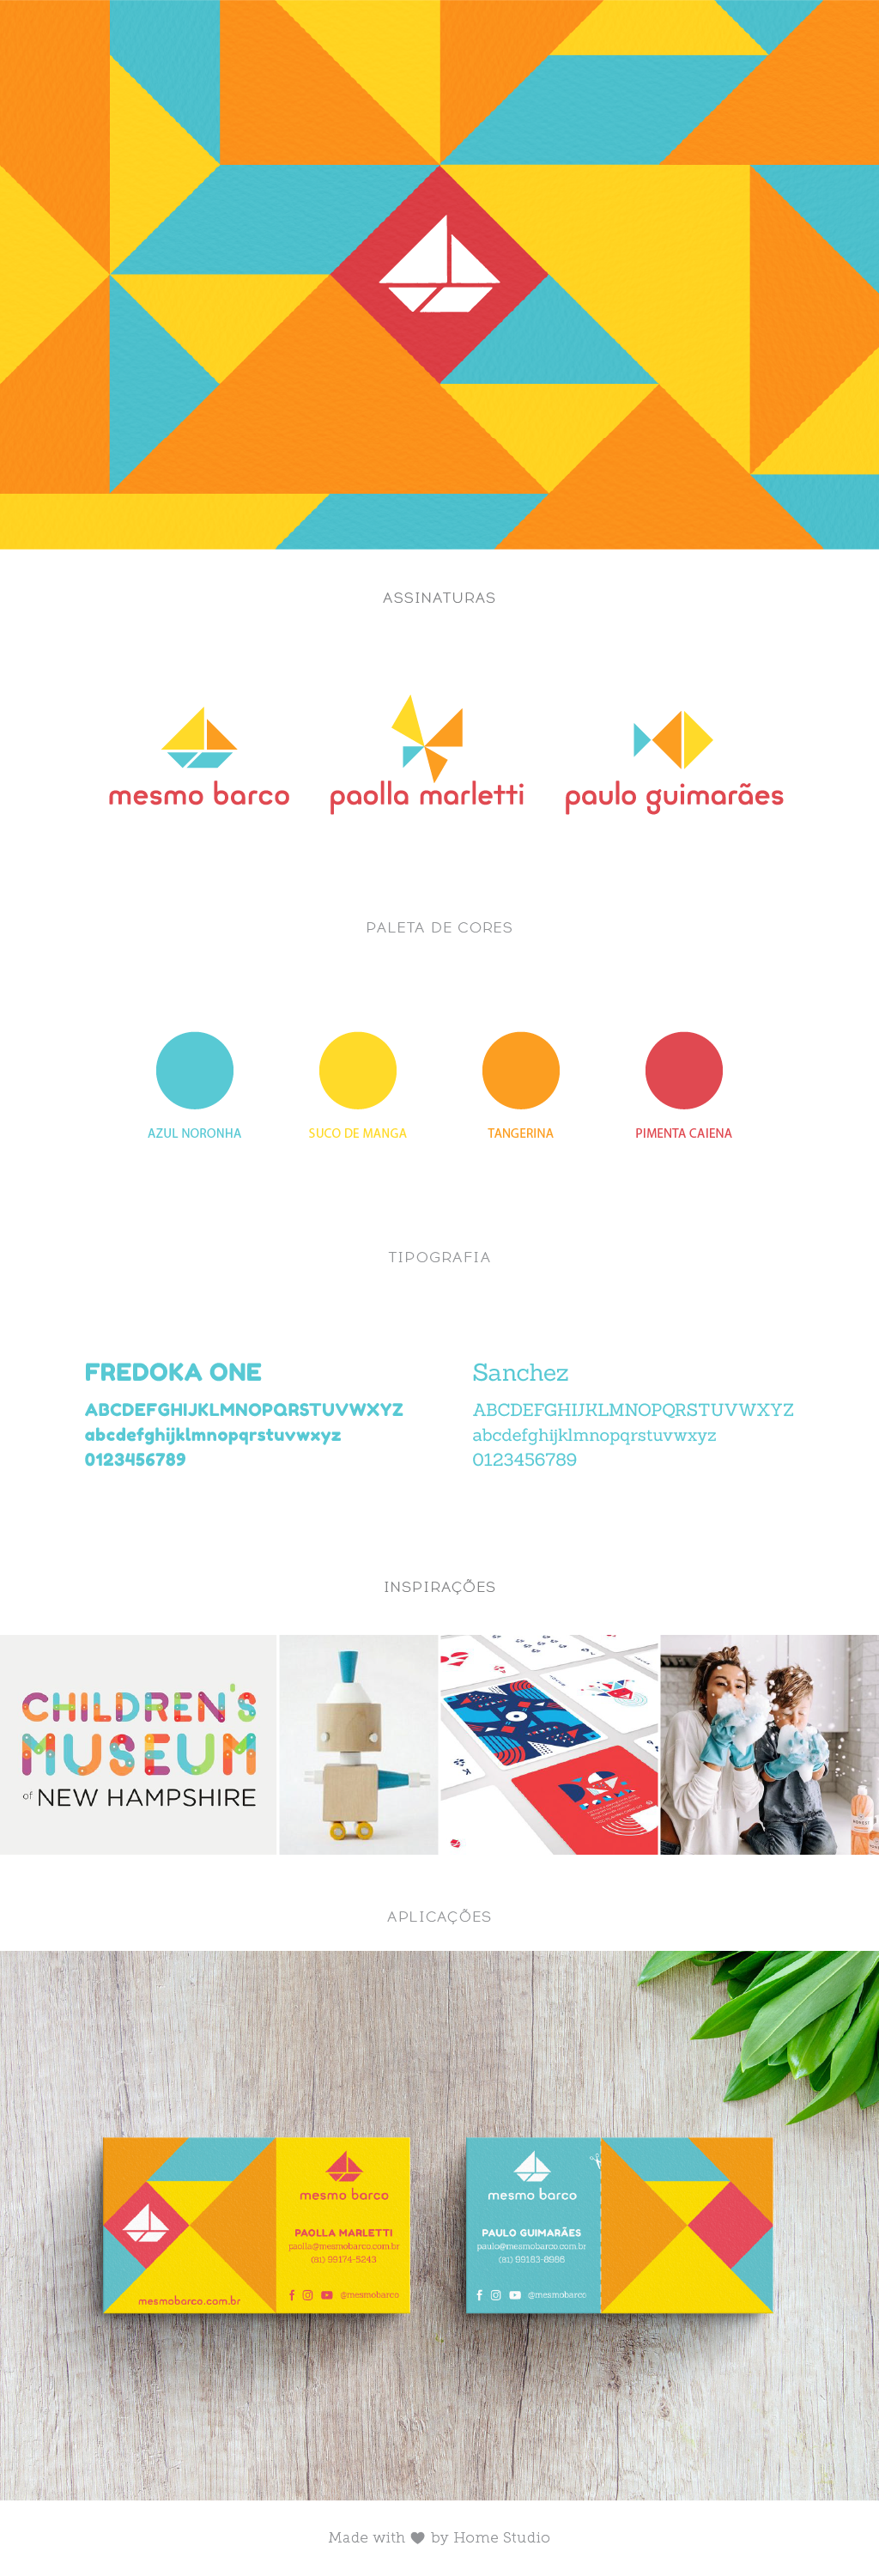 Brandboard illustrating the fundamental elements of the brand to guide the client: basic signatures, main colors, typography, inspirations and one application in the form of a business card.